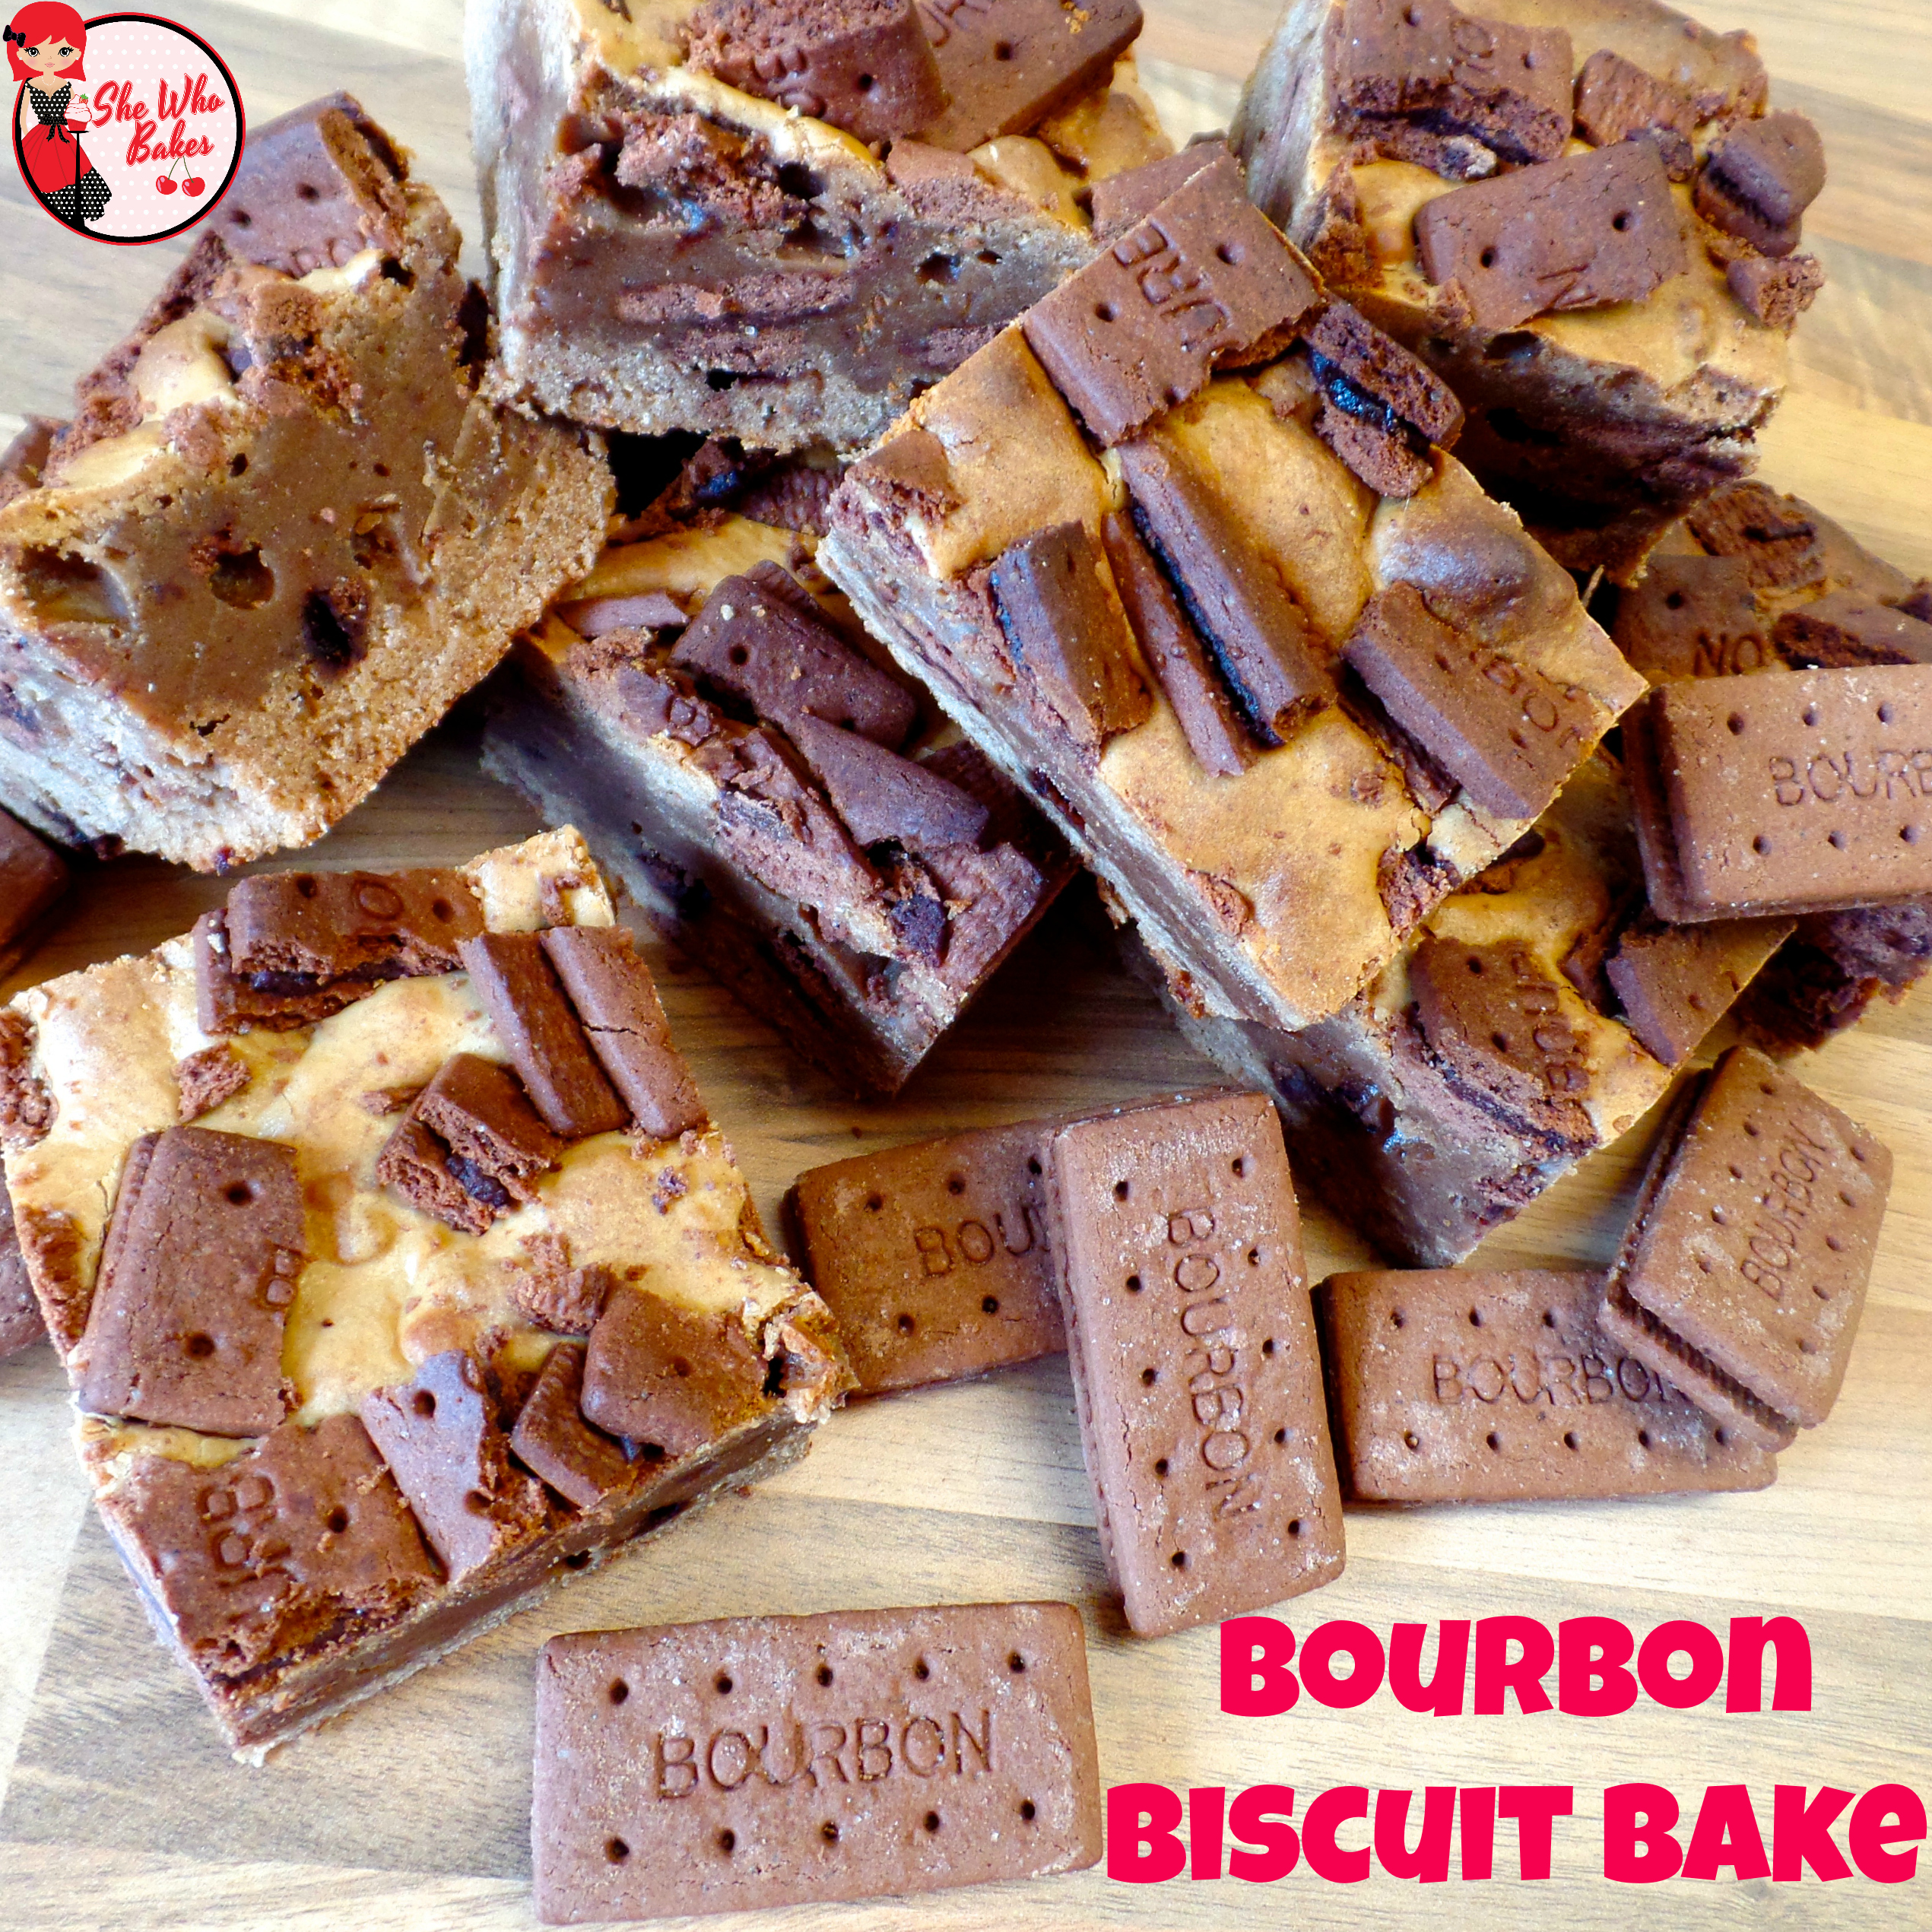 Bourbon Biscuit Bake She Who Bakes